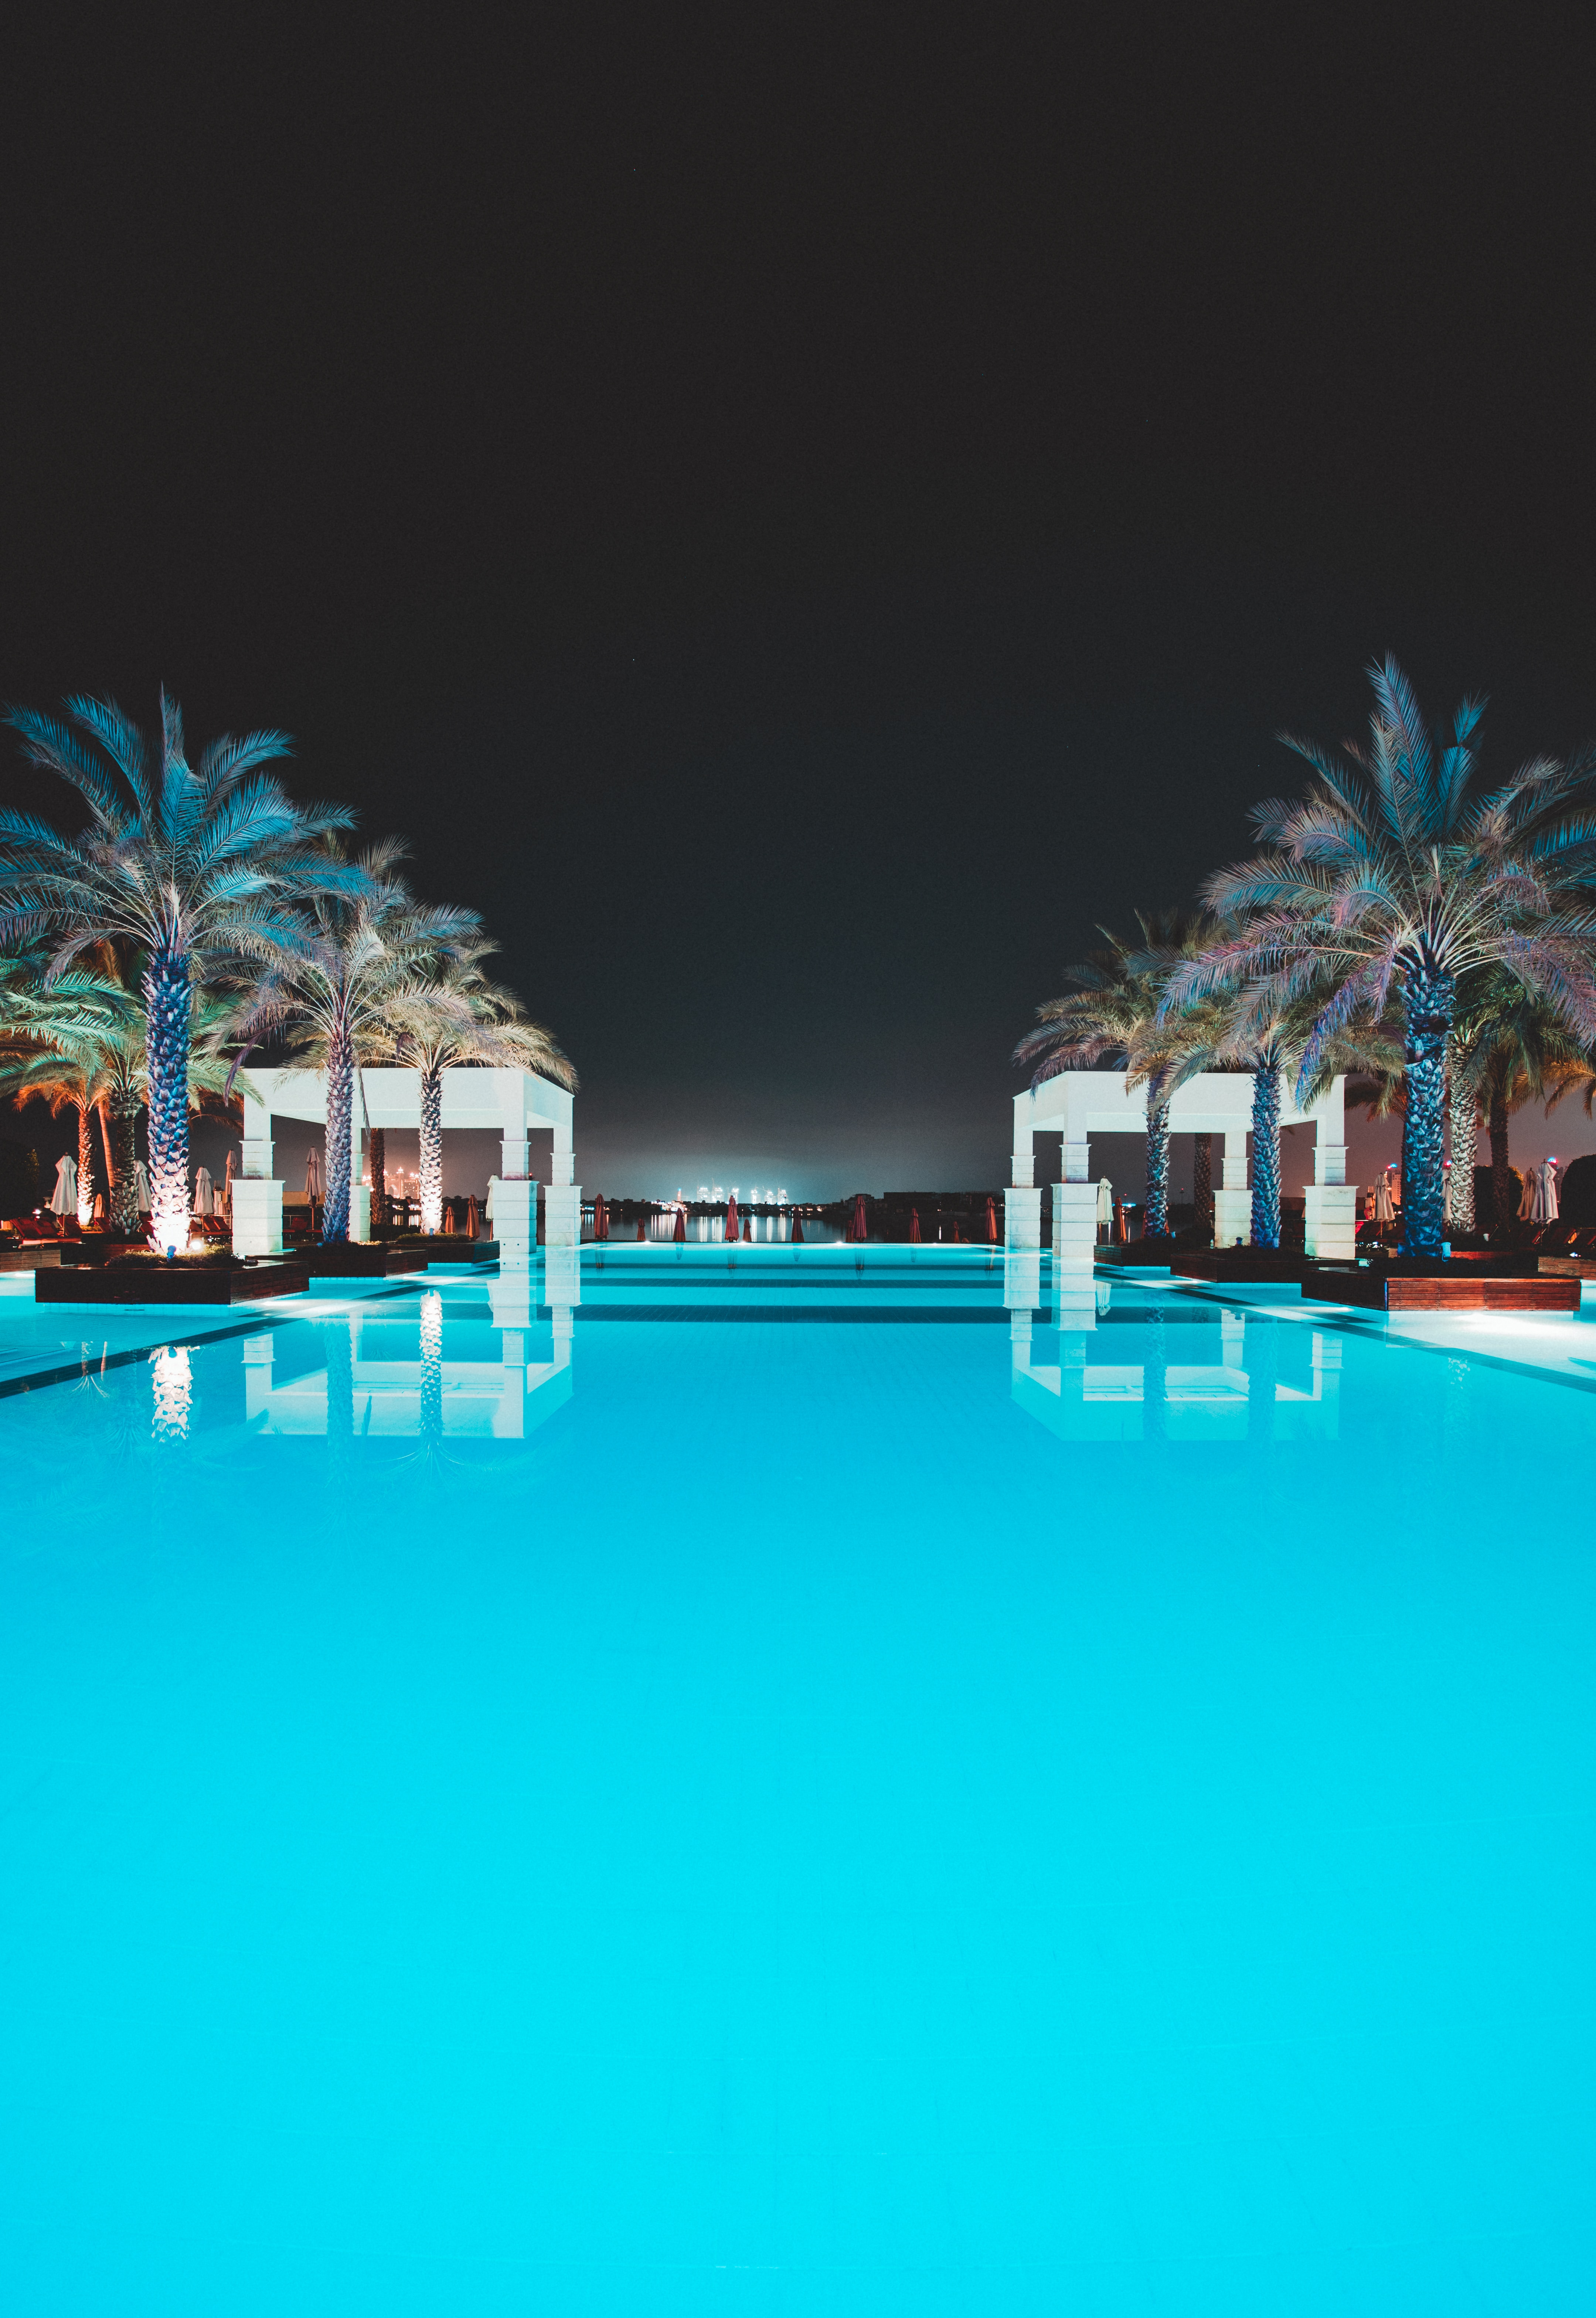 77192 download wallpaper Water, Palms, Miscellanea, Miscellaneous, Relaxation, Rest, Pool, Suite, Lux screensavers and pictures for free